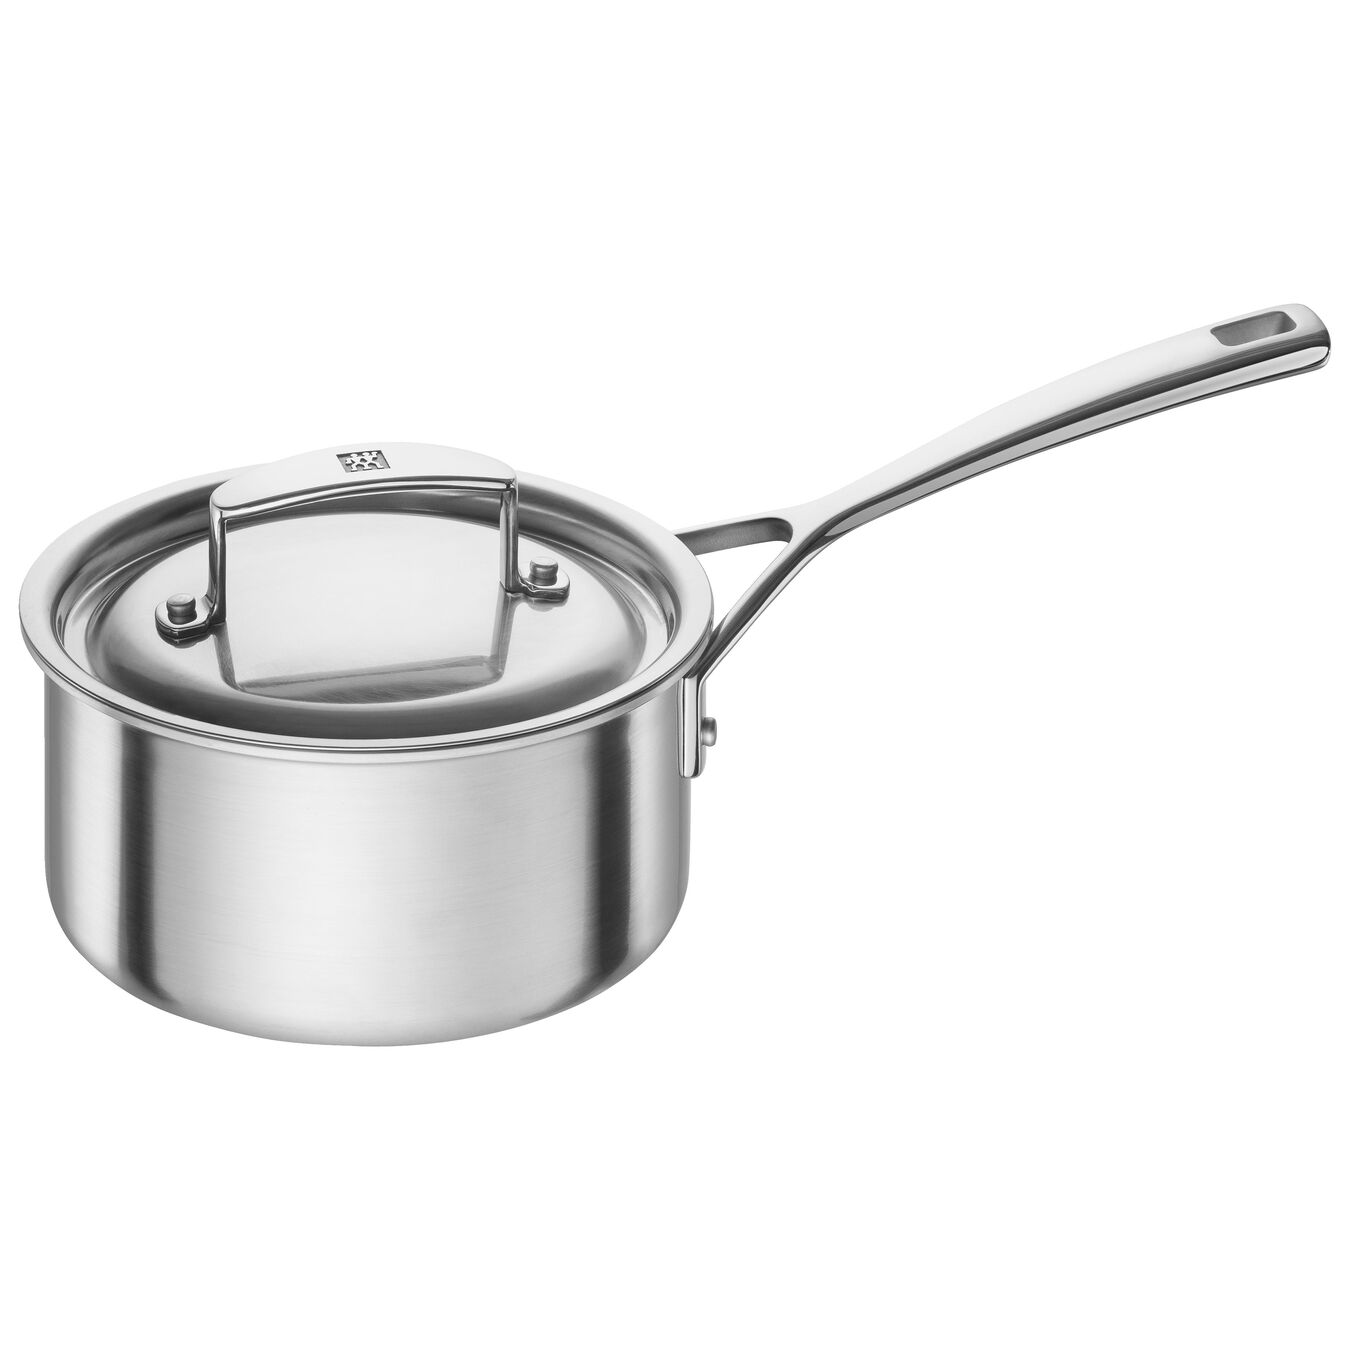 1.5 L 18/10 STAINLESS STEEL SAUCE PAN WITH LID,,large 1